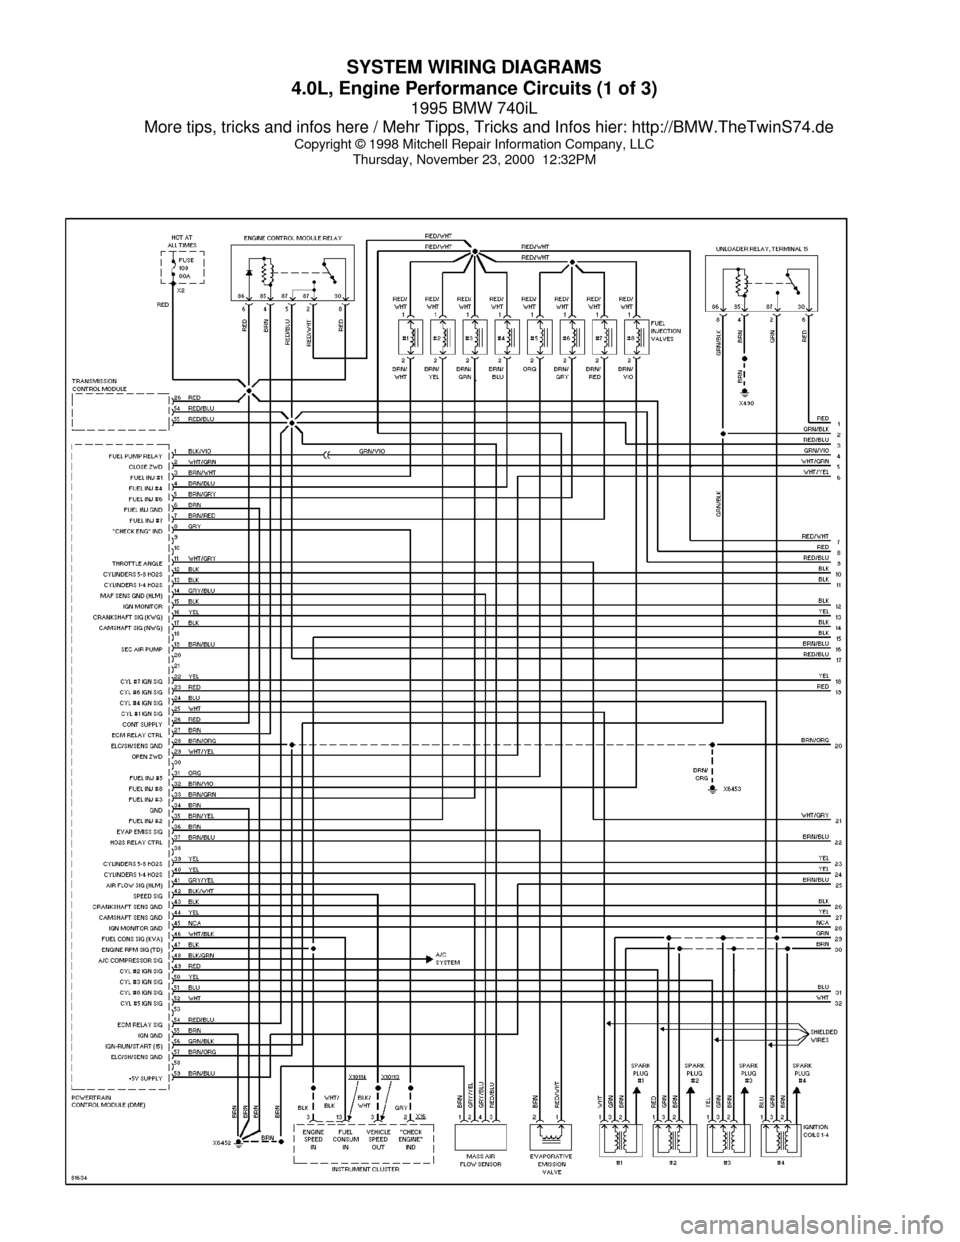 Bmw E38 Wiring Diagram Archive Of Automotive 1984 318i Radio Free Picture